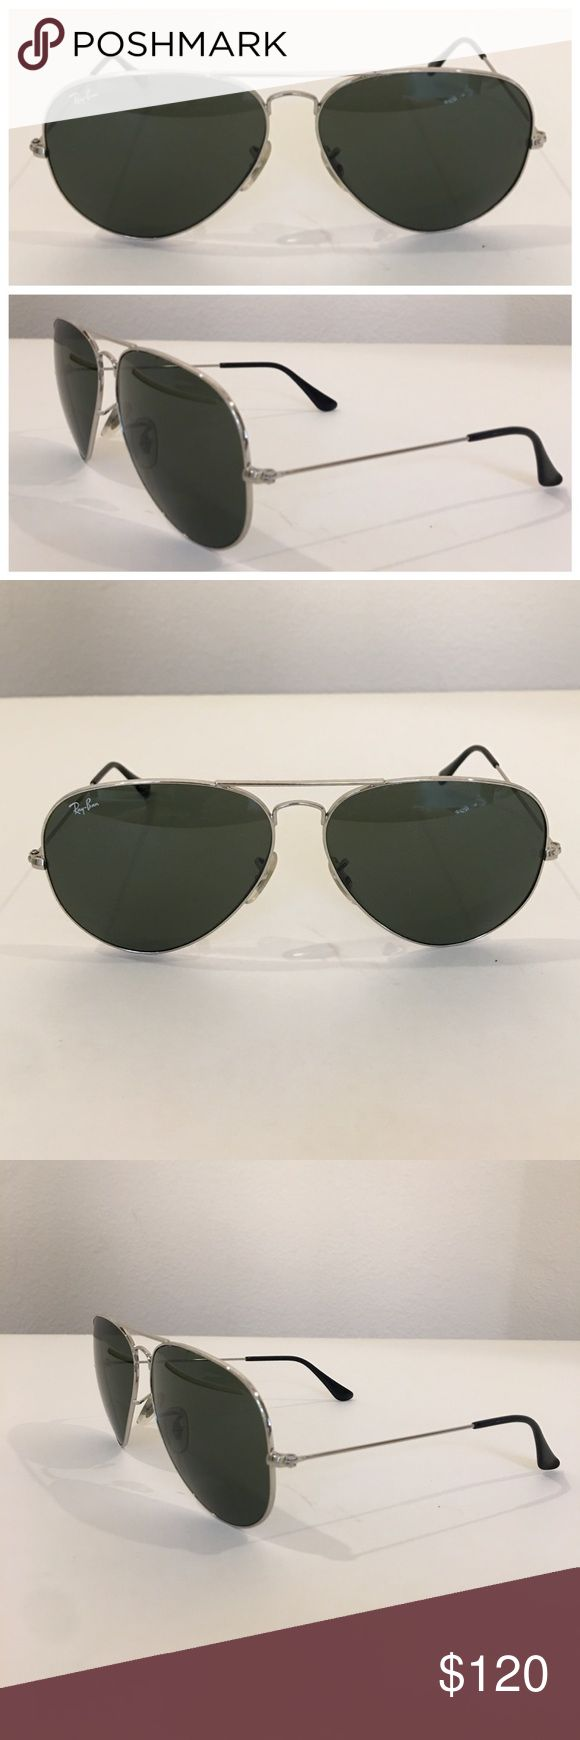 Authentic RAY BAN large aviator sunglasses Authentic RAY BAN silver tone large metal aviator sunglasses, made in Italy, model RB 3025. In preowned condition with very gentle scratches on the lens.  Signature RB etched into lens with serial number etched i